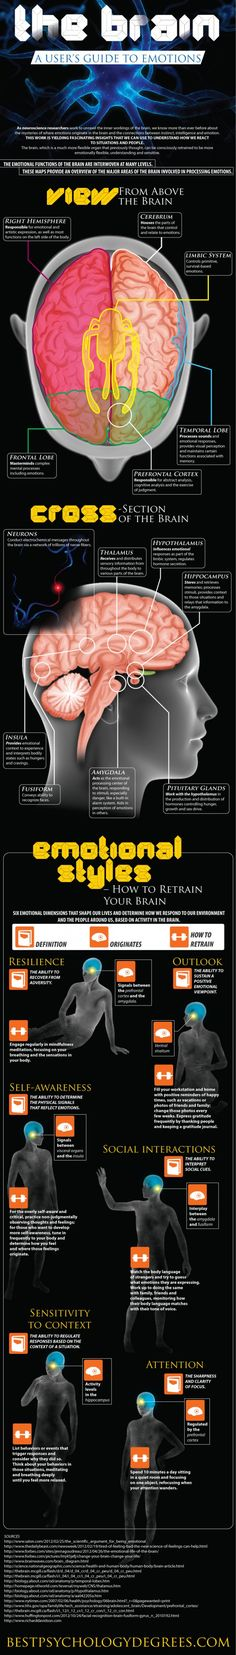 The Brain: A User's Guide to Emotions Infographic I'll tack this my list of random info I may need to know someday...